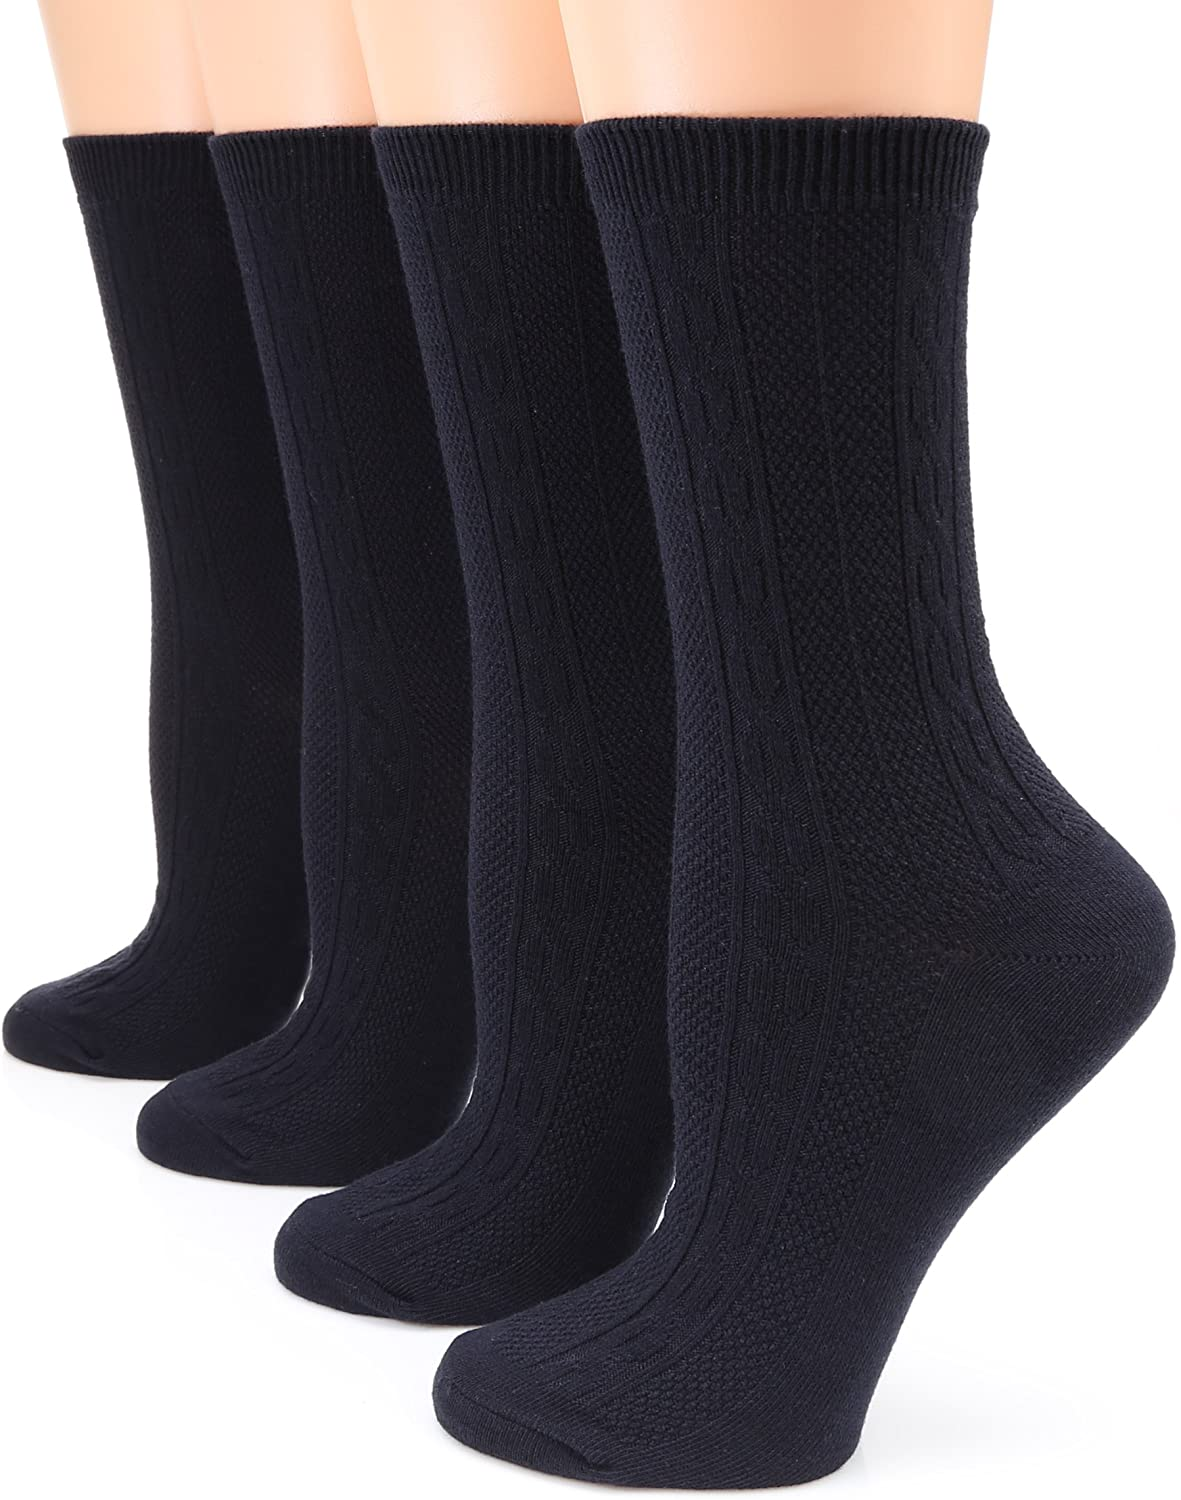 MIRMARU Women's 4 Pairs Lightweight Cable Knitted Cotton Casual Crew Socks